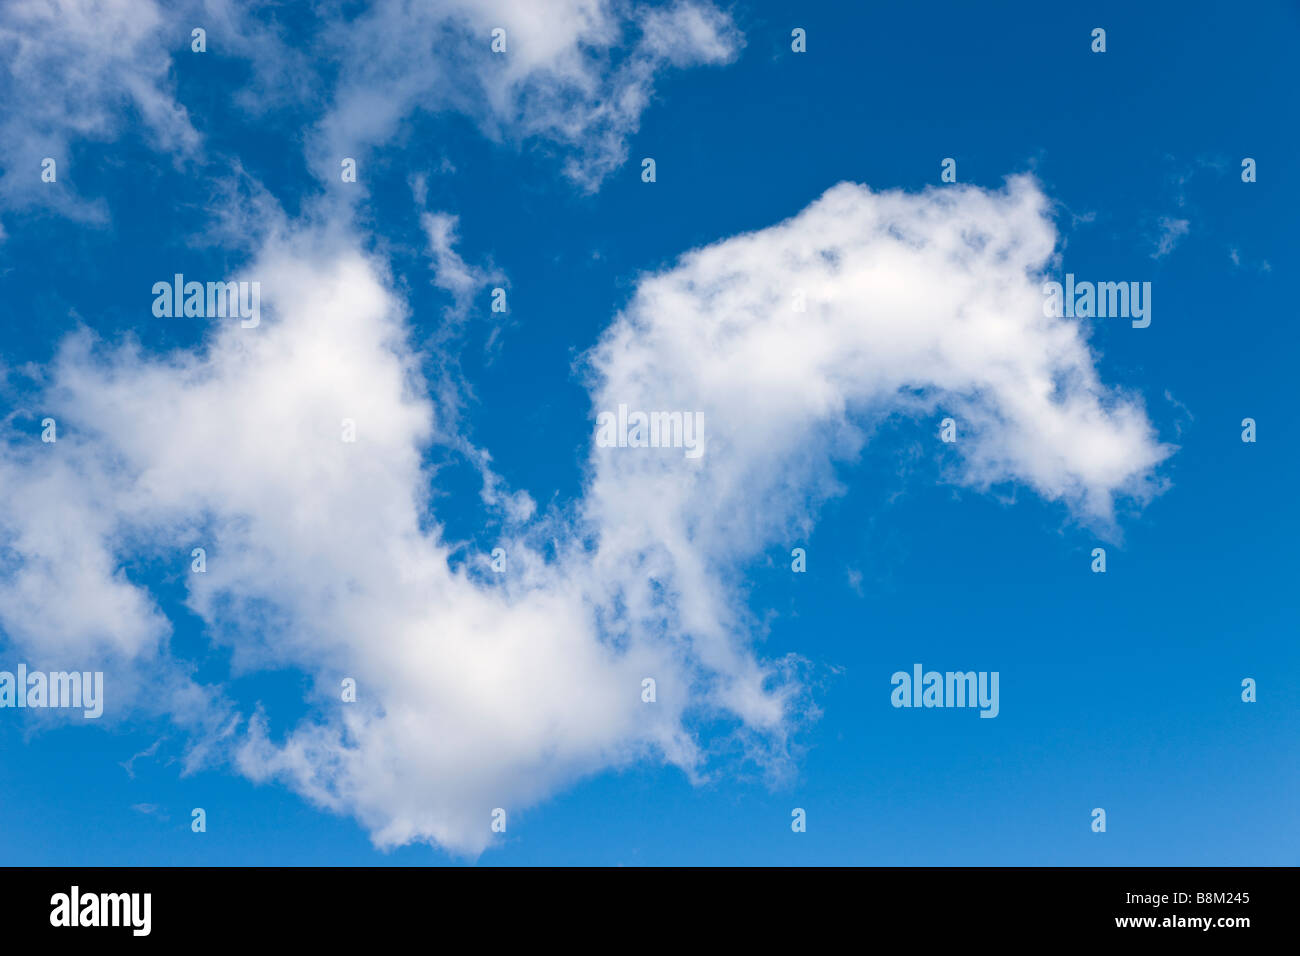 Fluffy white cloud in blue sky - Stock Image